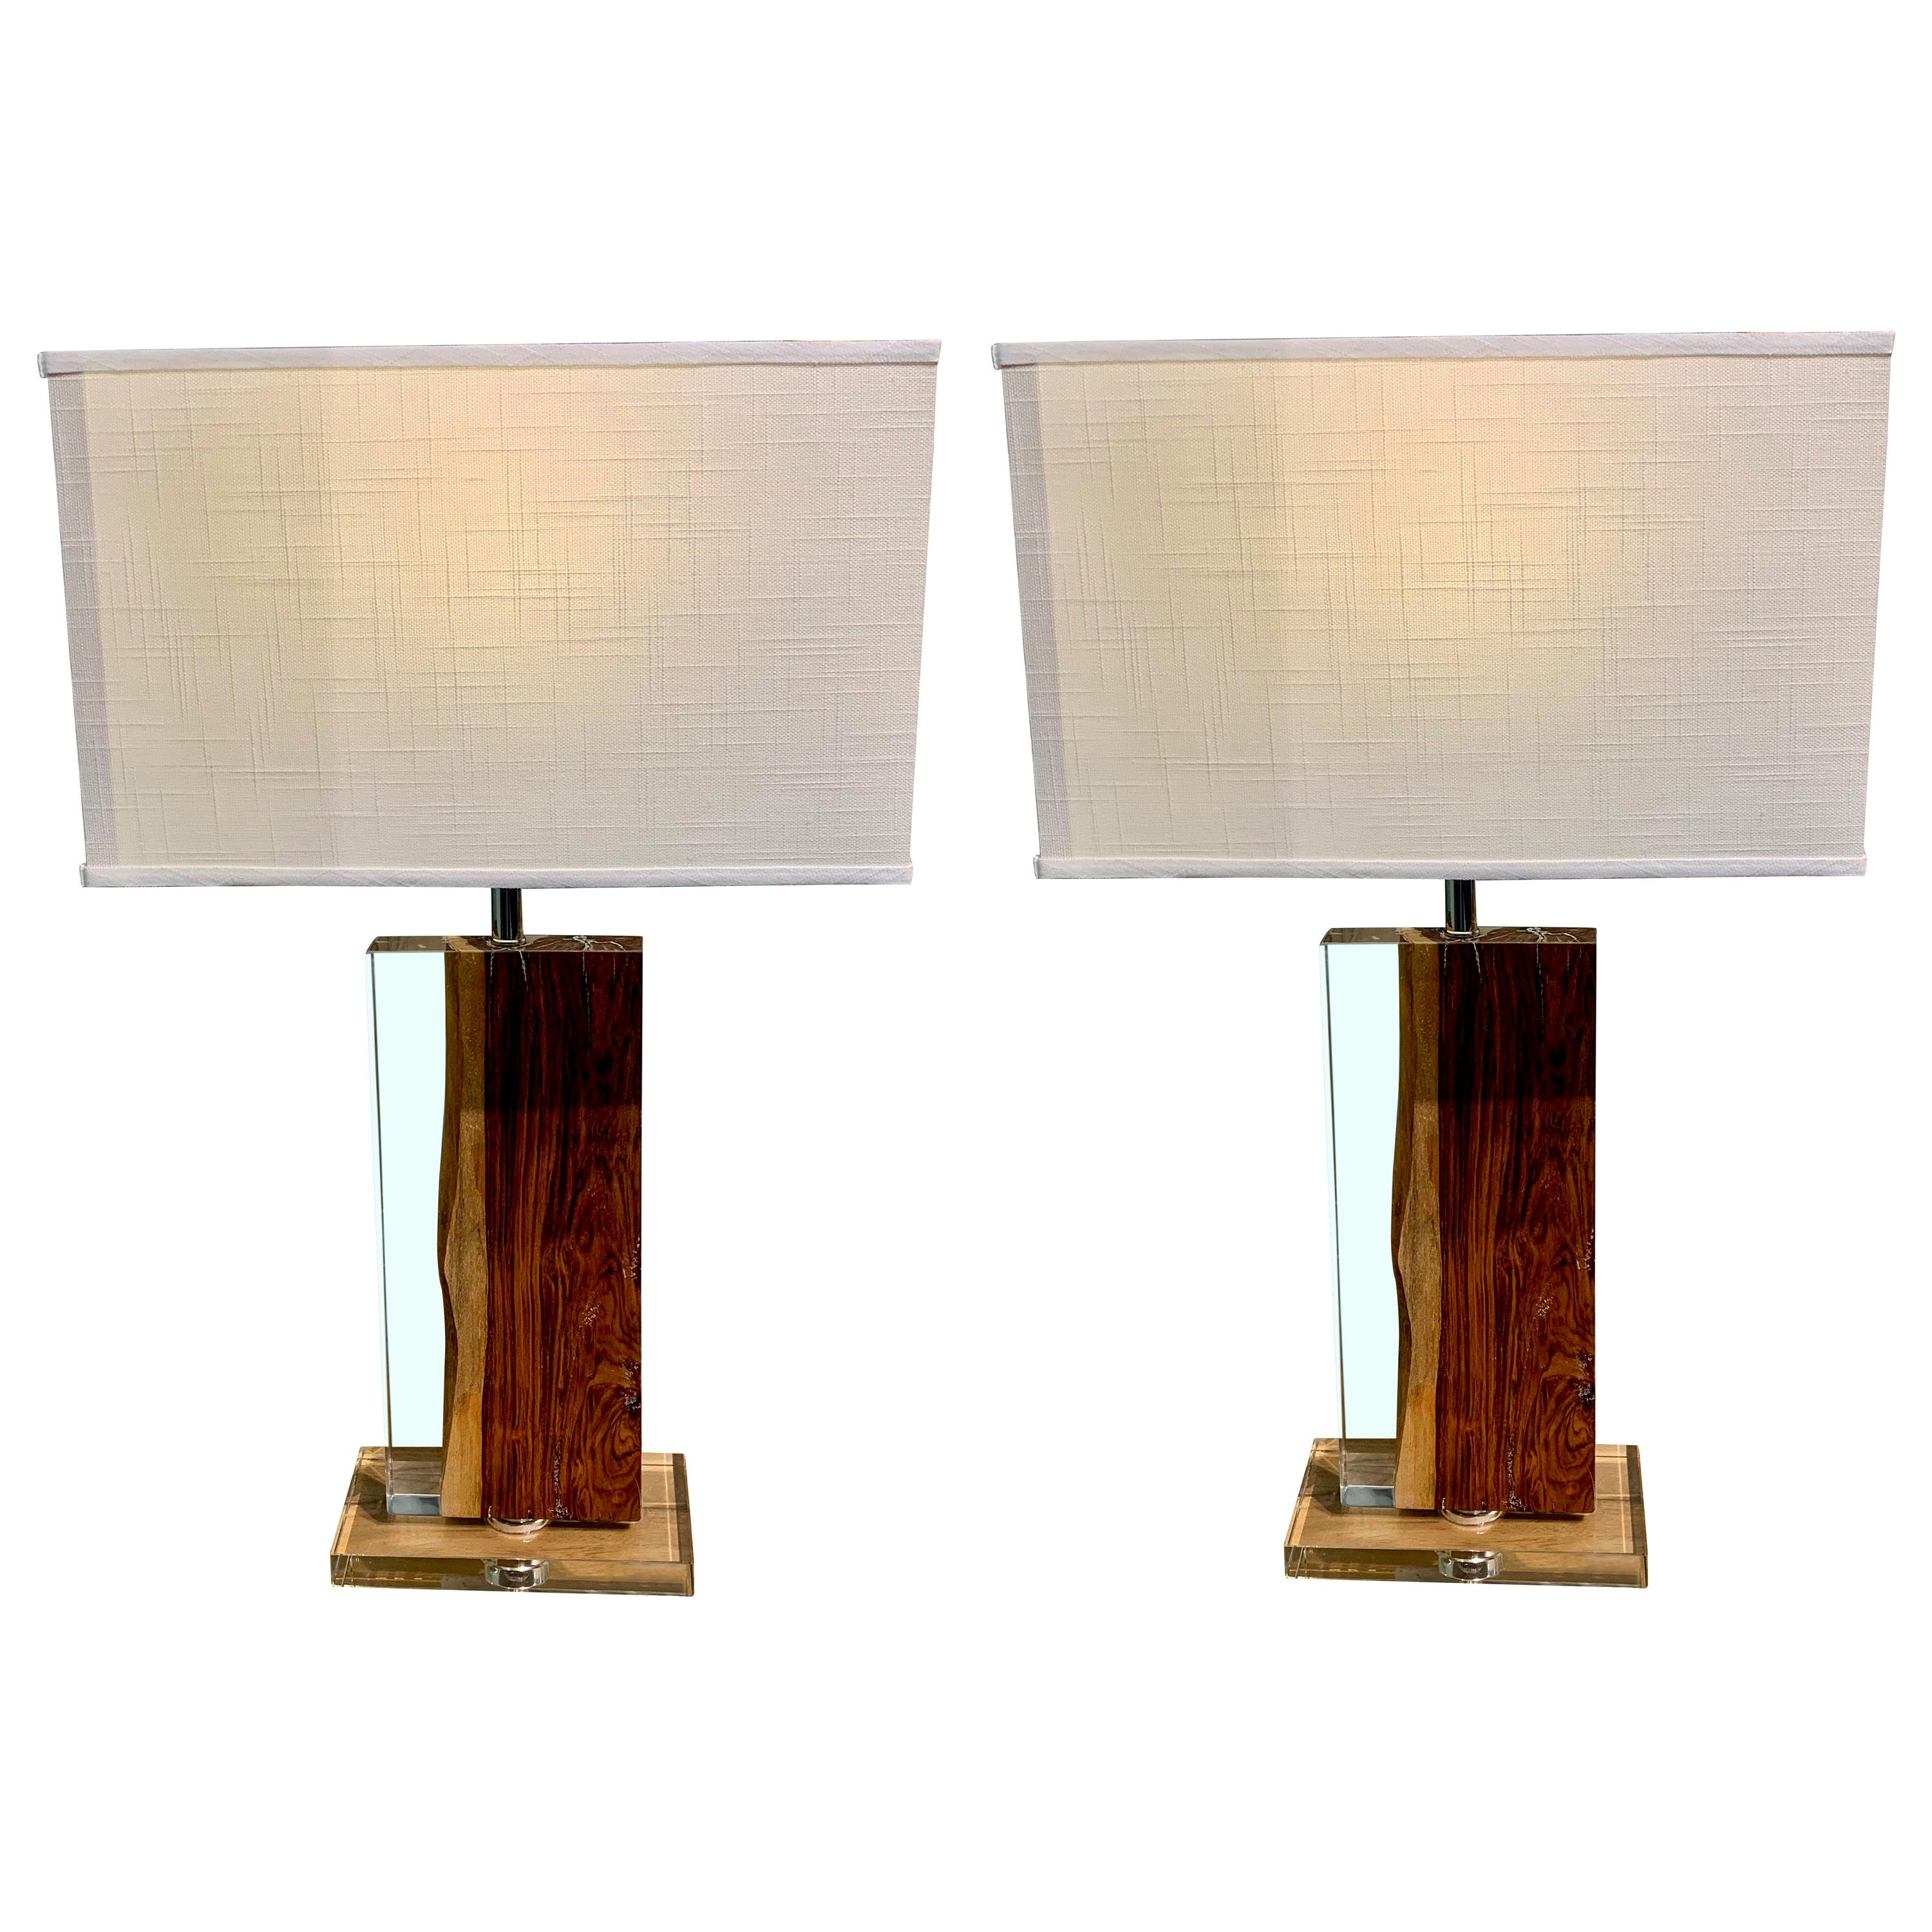 Resin and Palisander Rectangular Shaped Pair of Lamps, Indonesia, Contemporary